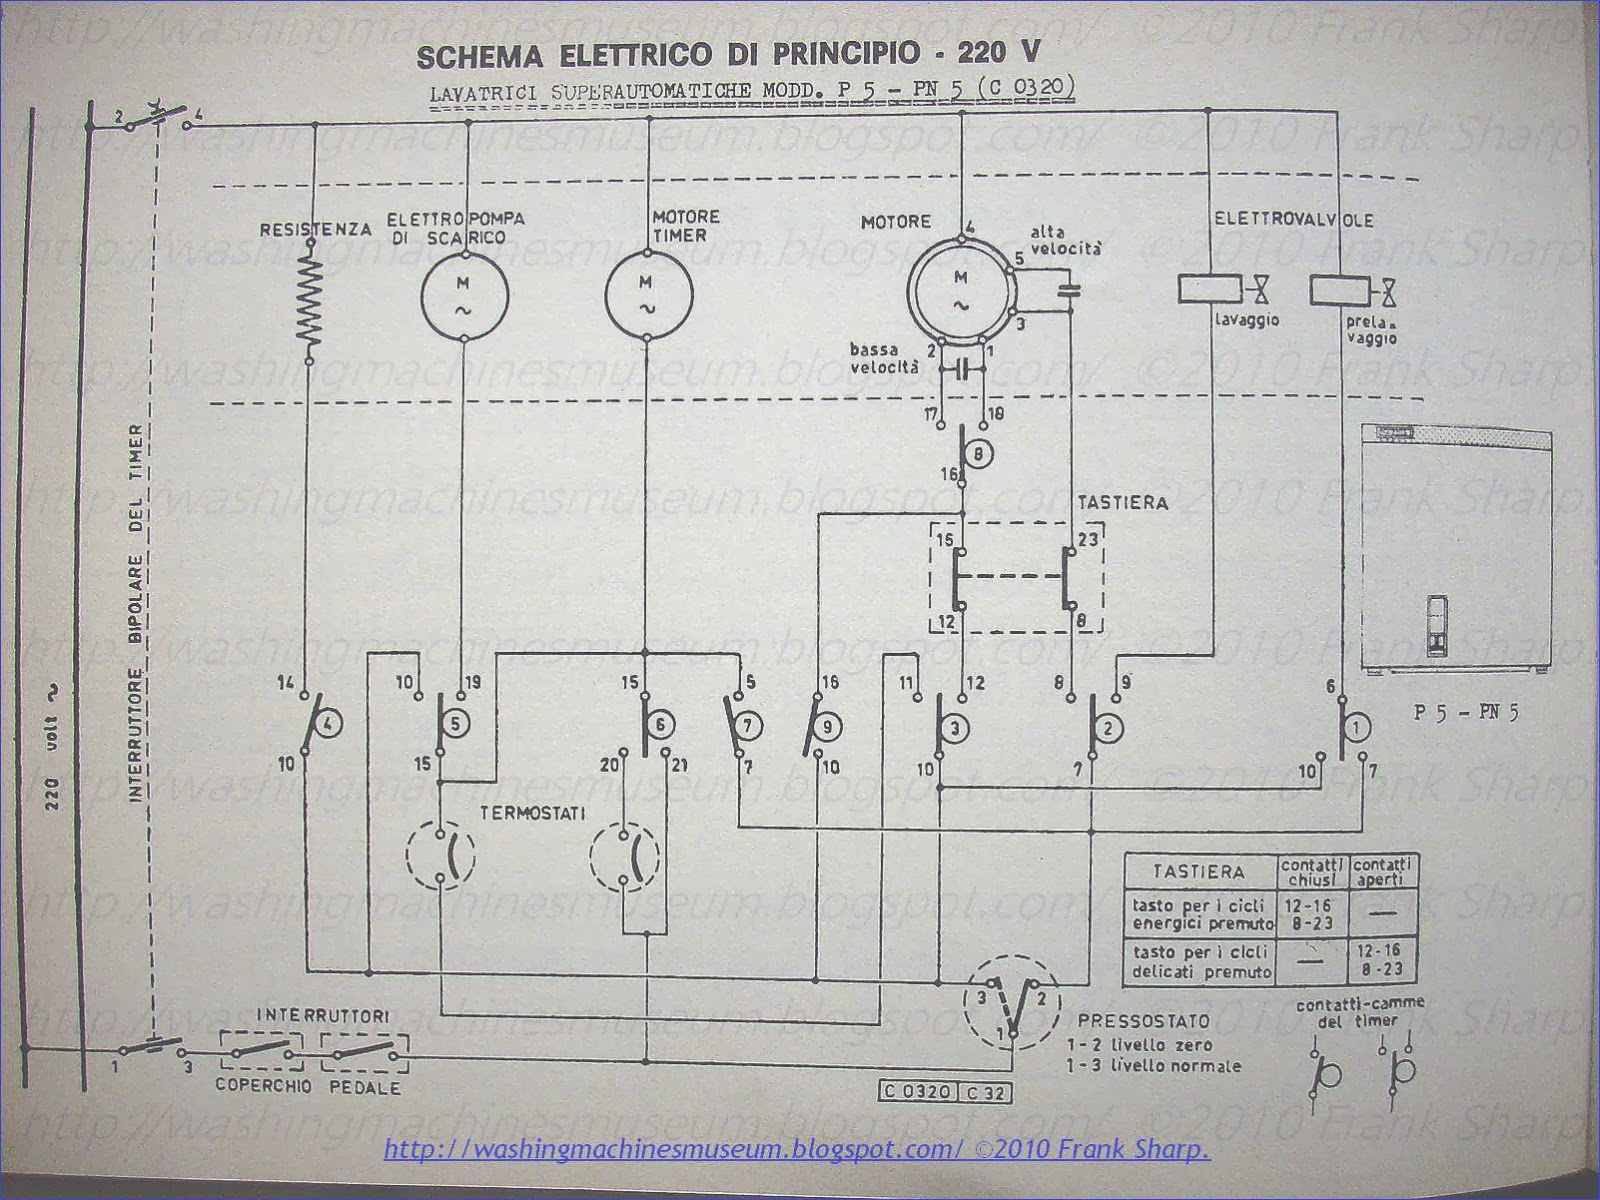 IMGH_07645__TVMS washer rama museum rex (zanussi) mod p5 timer c0320 schematic crouzet mhs2 timer wiring diagram at crackthecode.co